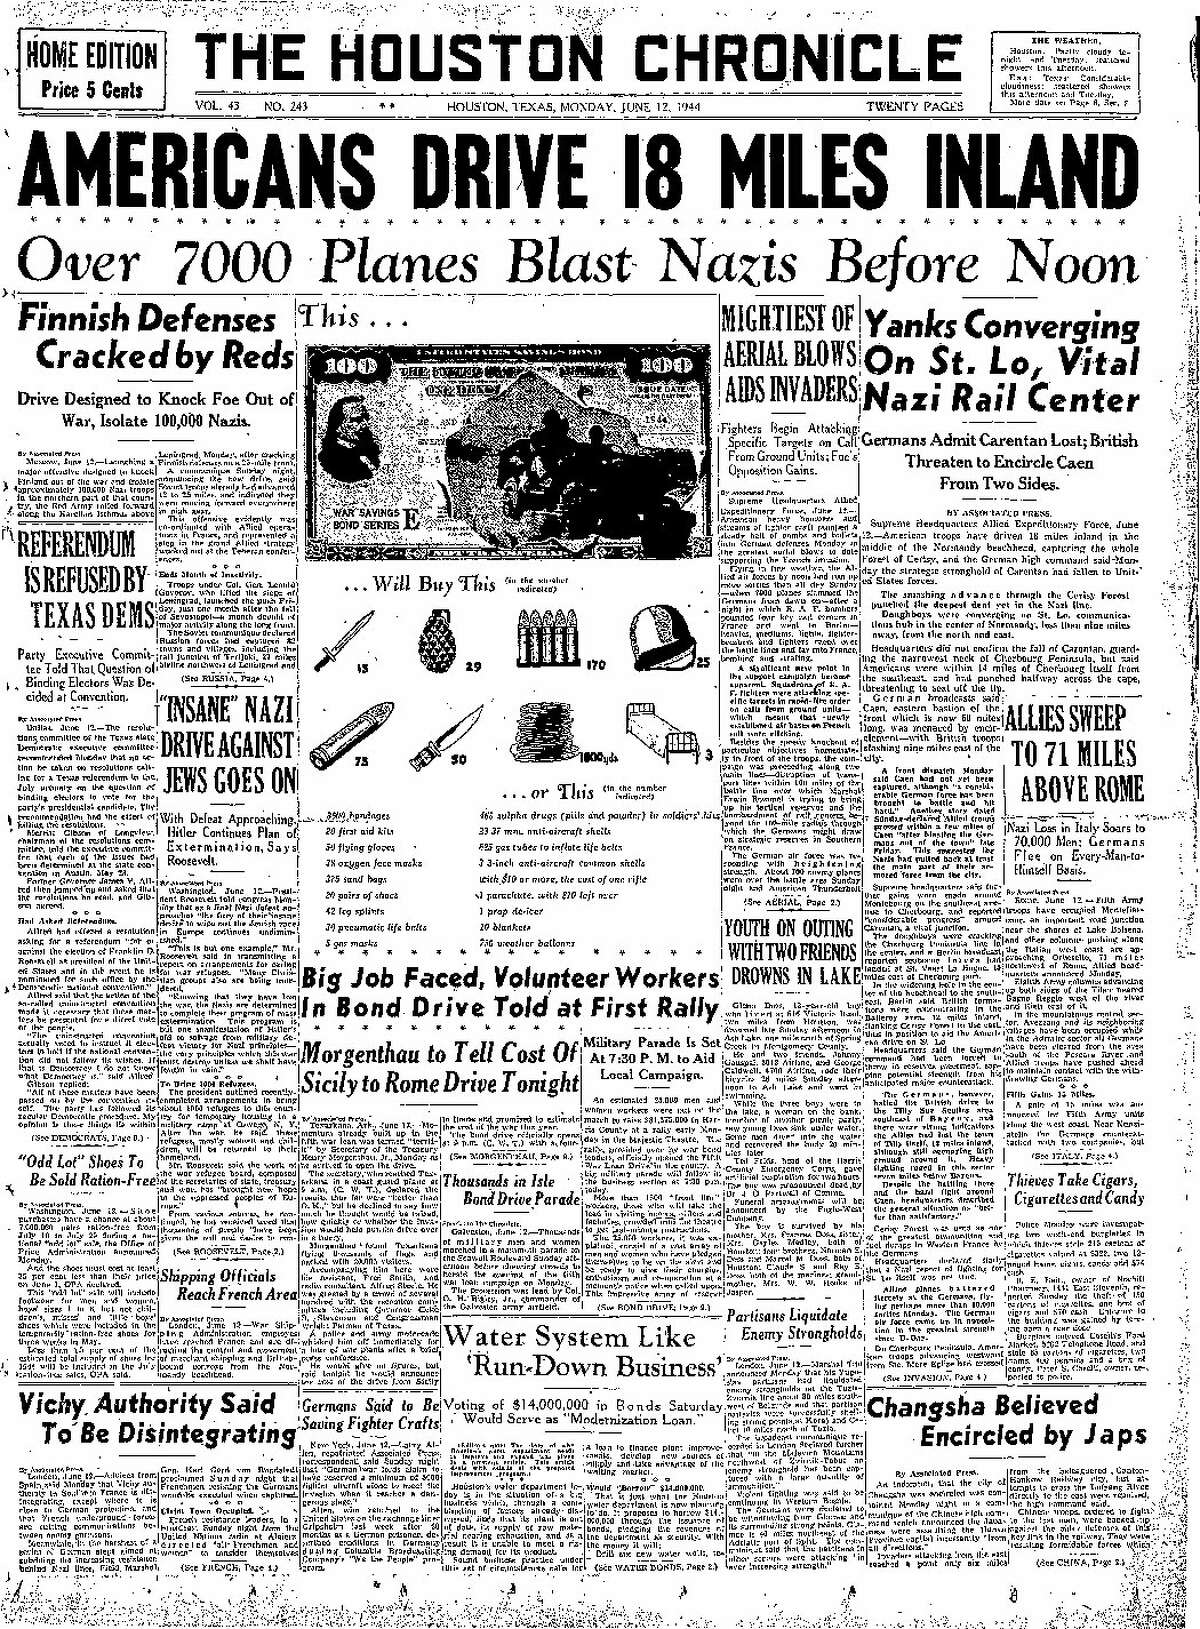 Vol. 43 No. 243 Houston, Texas Monday, June 12, 1944 (As it appeared in the Houston Chronicle)